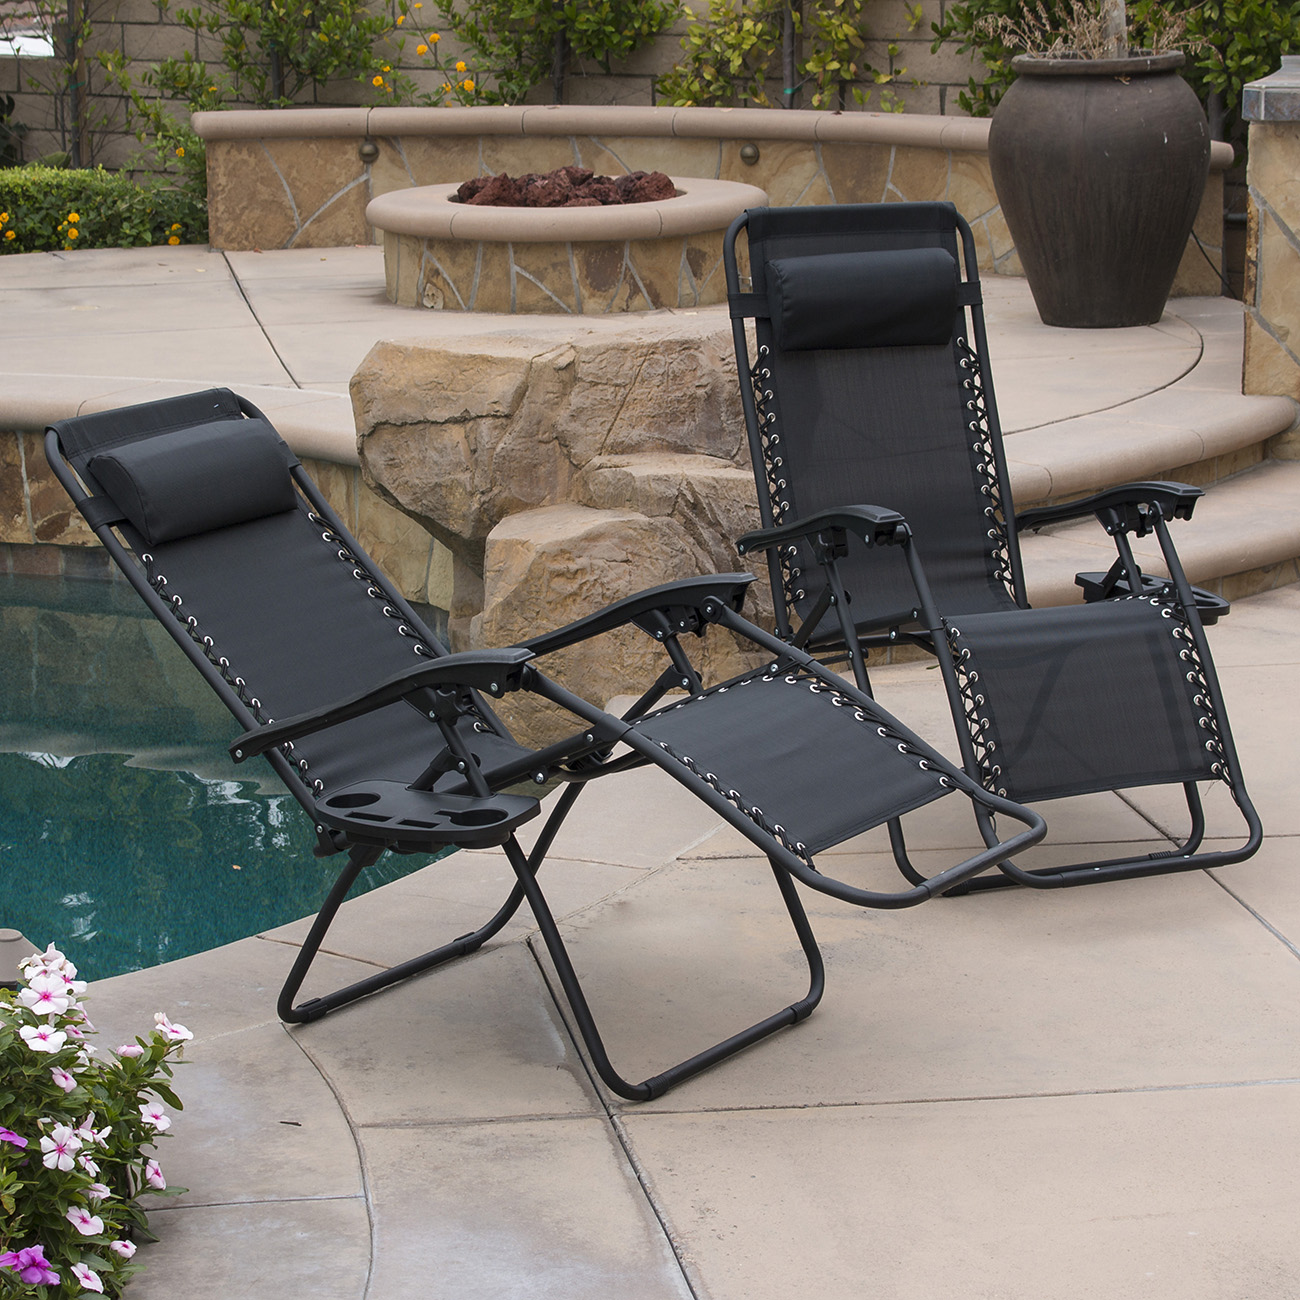 Zero Gravity Outdoor Lounge Chair Details About 2pc Zero Gravity Chairs Lounge Patio Folding Recliner Outdoor Black W Cup Holder